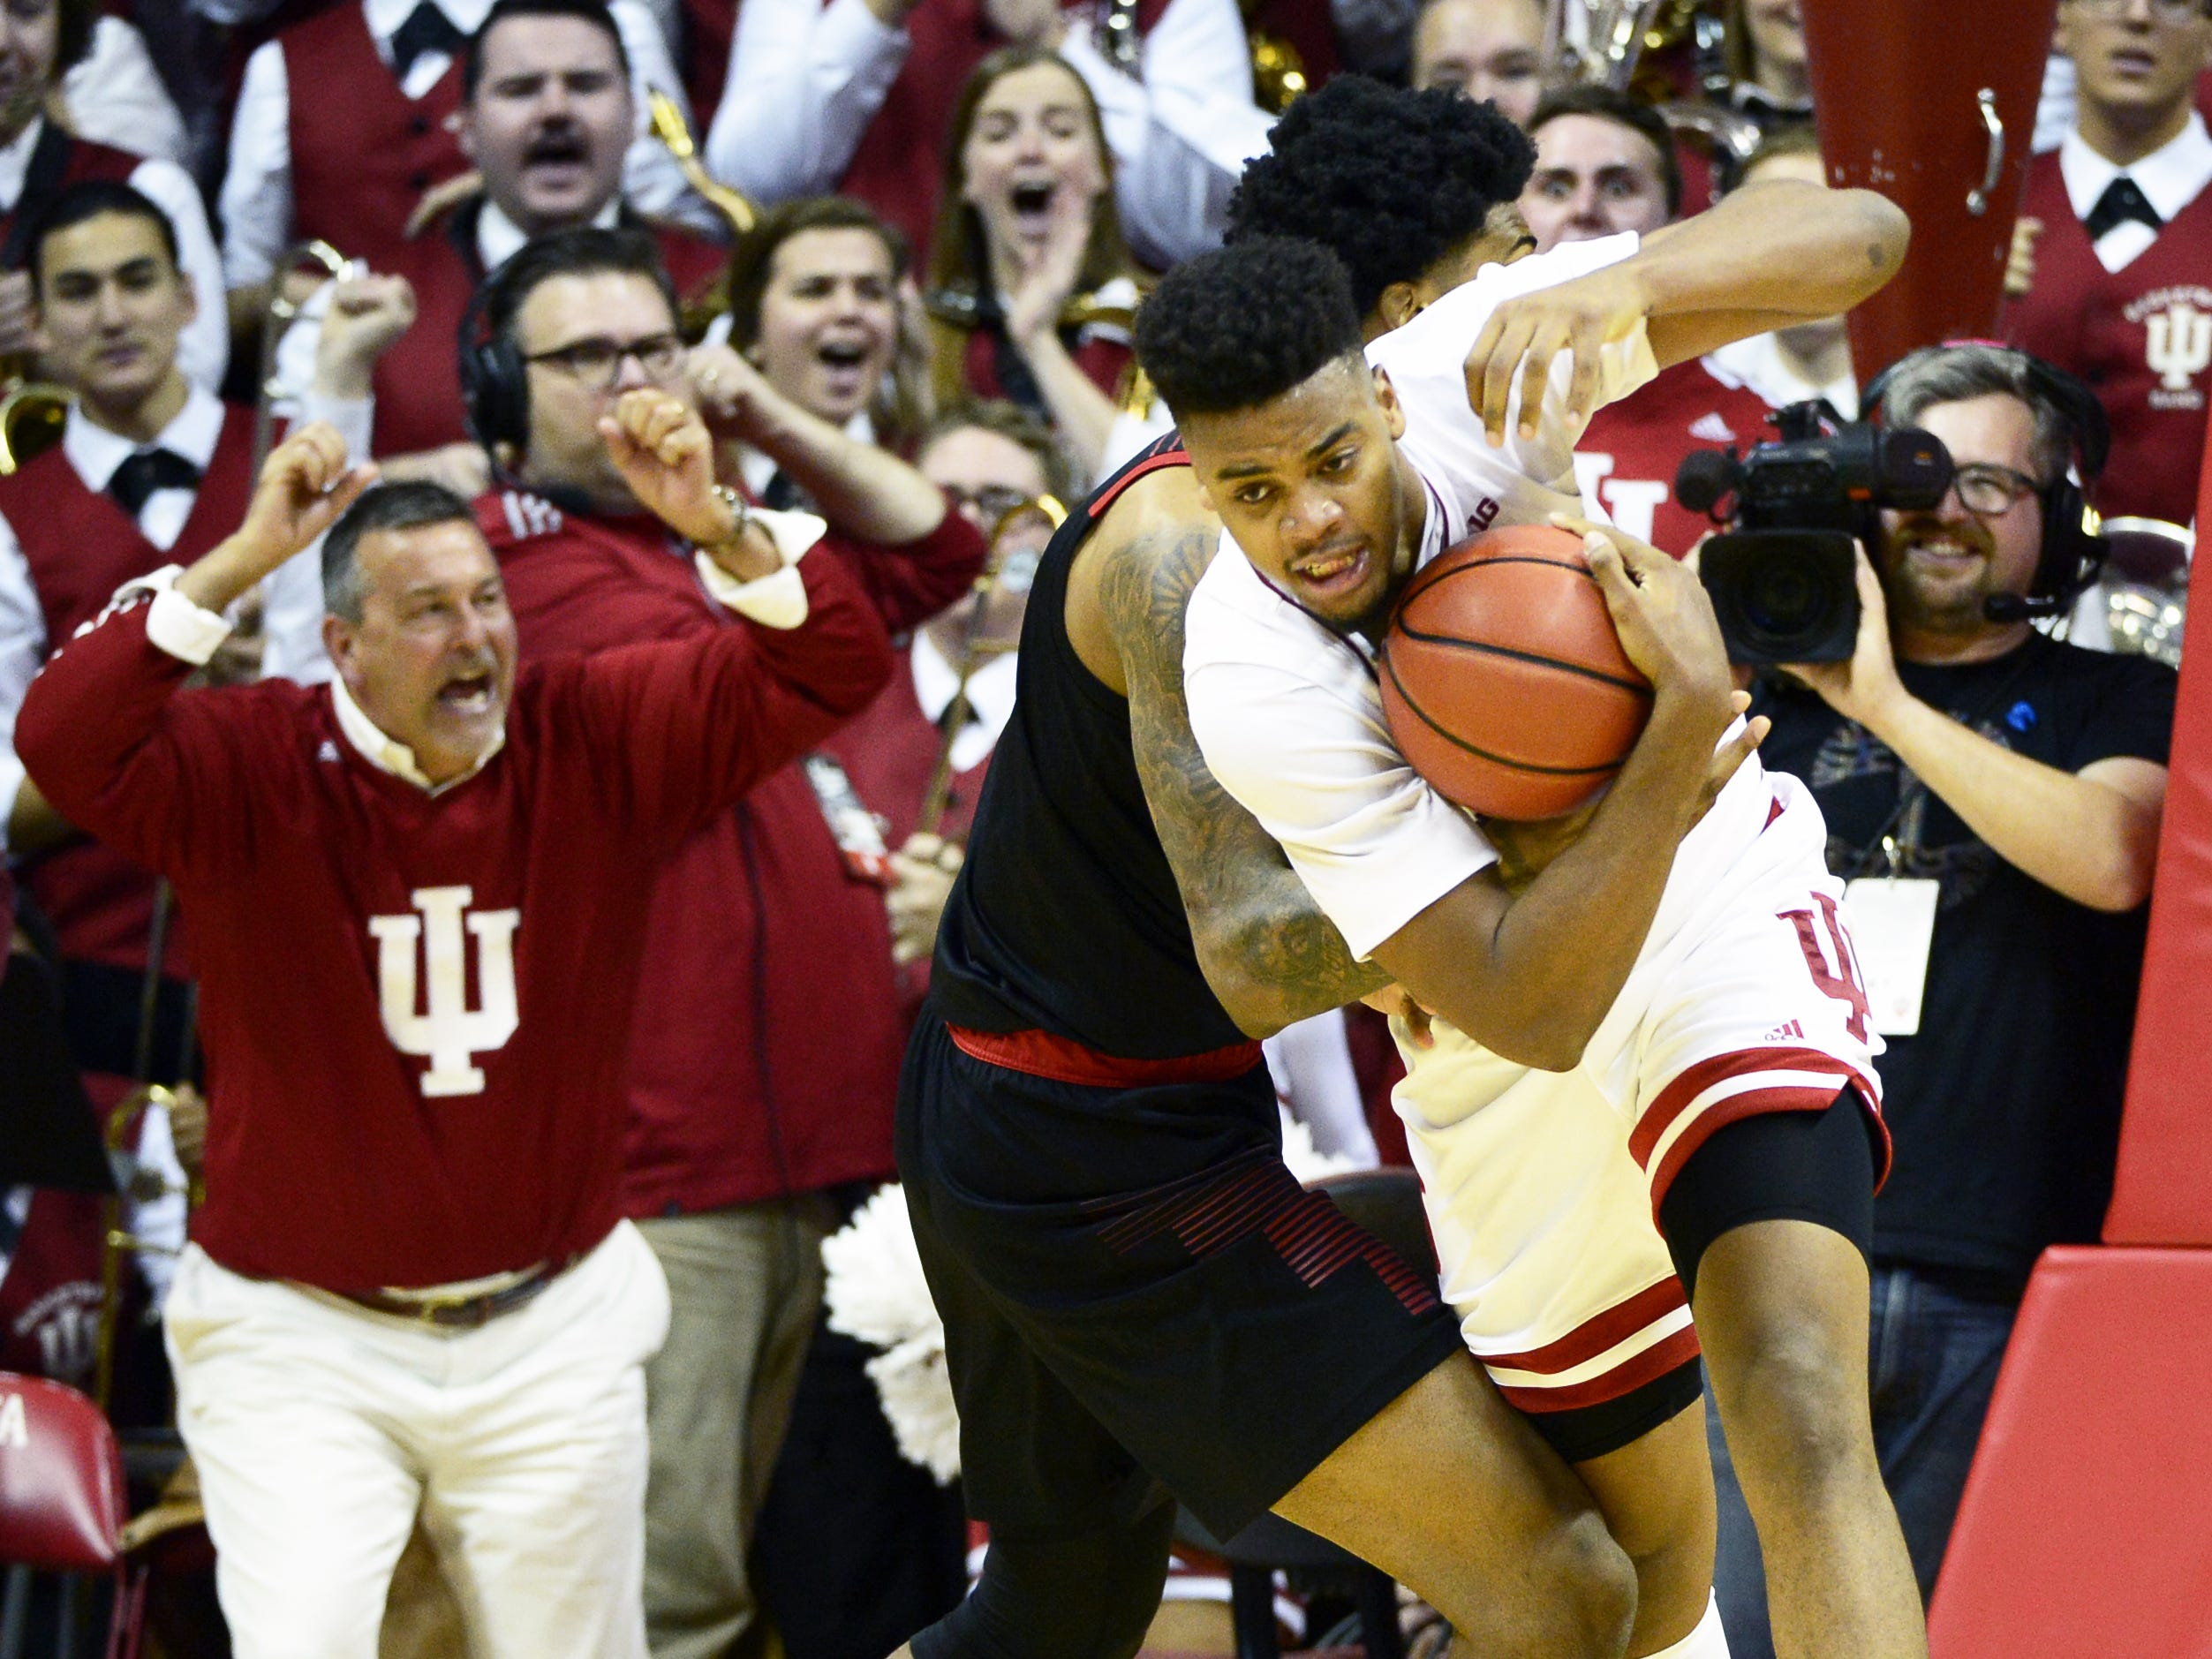 Indiana Hoosiers forward Juwan Morgan (13) is fouled at the end of the game against Louisville at Simon Skjodt Assembly Hall in Bloomington, Ind.